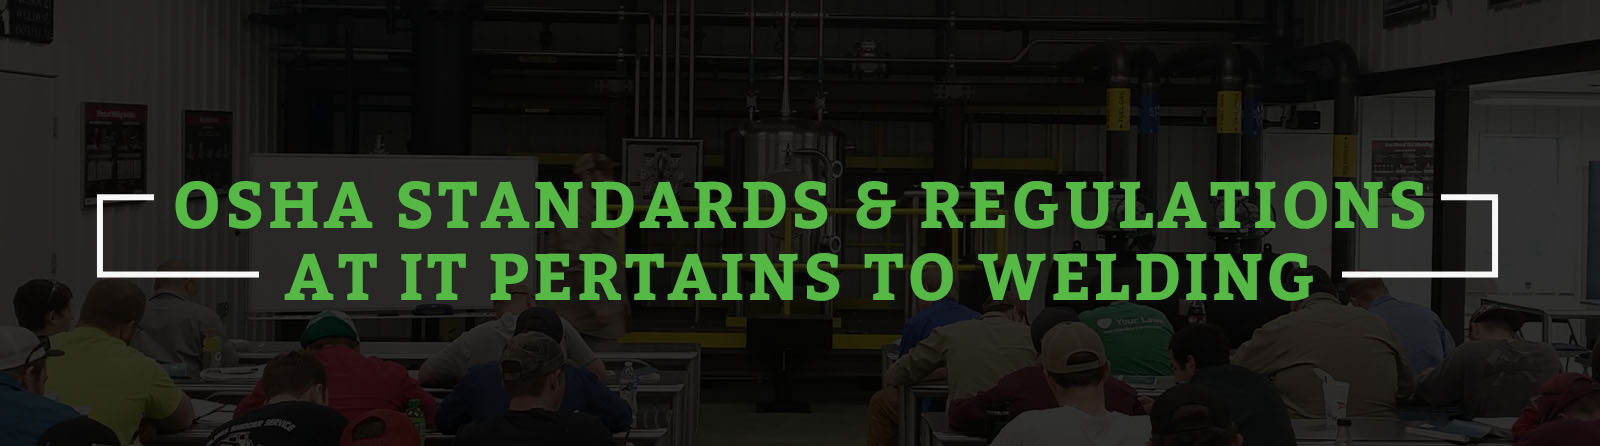 OSHA STANDARDS AND REGULATIONS AS IT PERTAINS TO WELDING